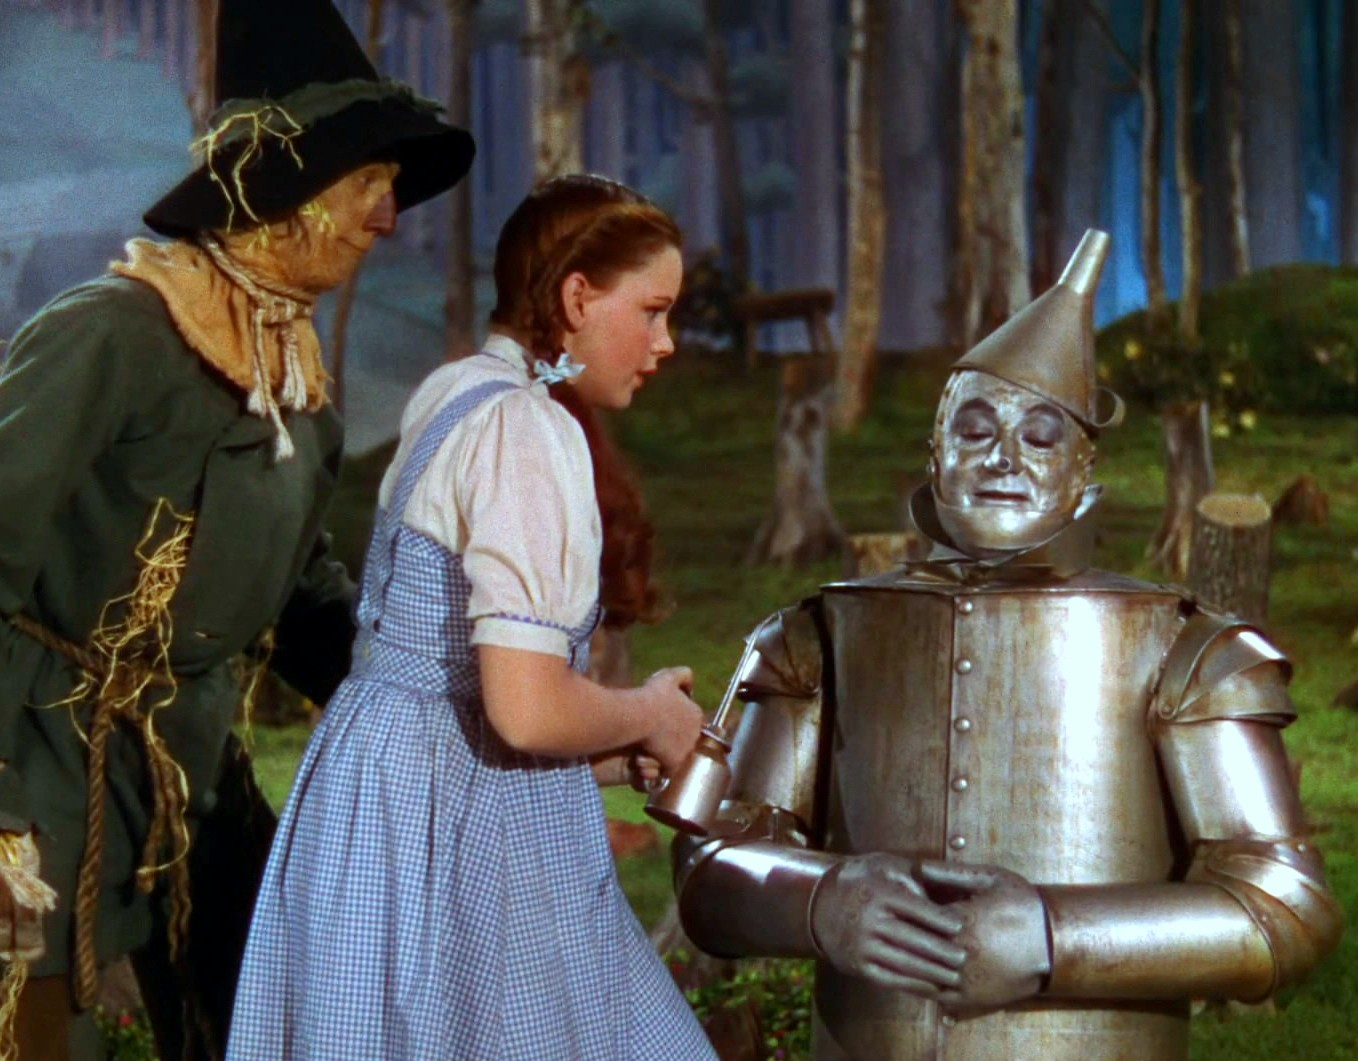 The Wizard of Oz' Masterpiece Revisited - Flick Minute Flick Minute